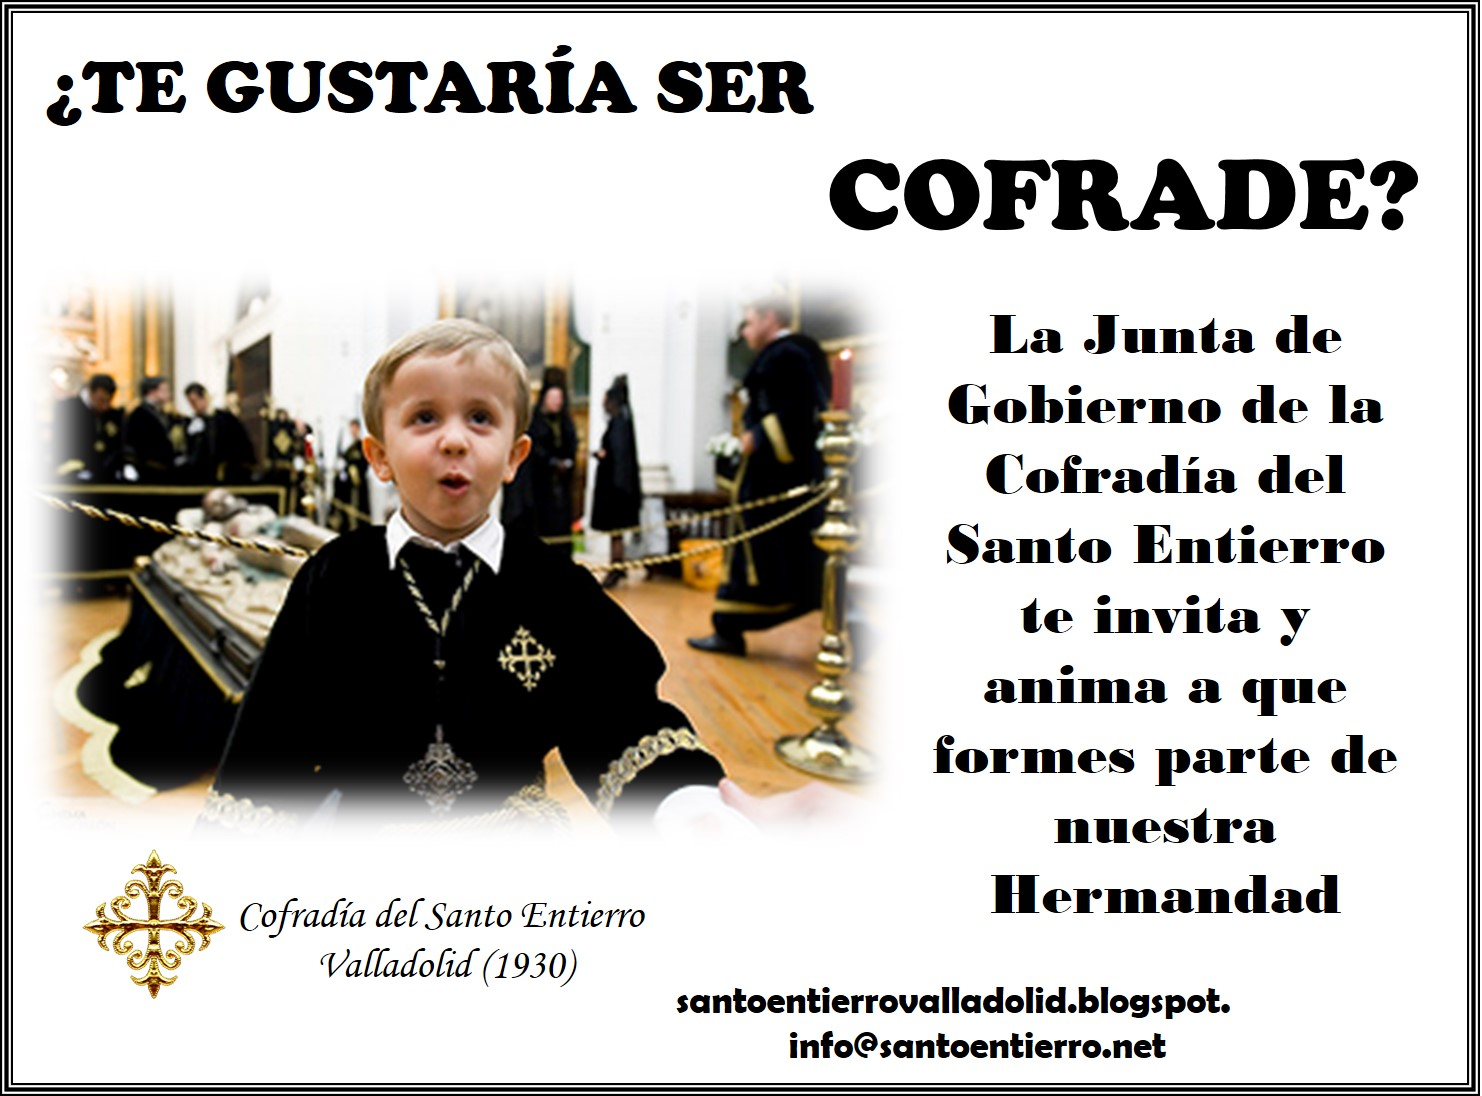 Cartel hazte cofrade 2 version 2